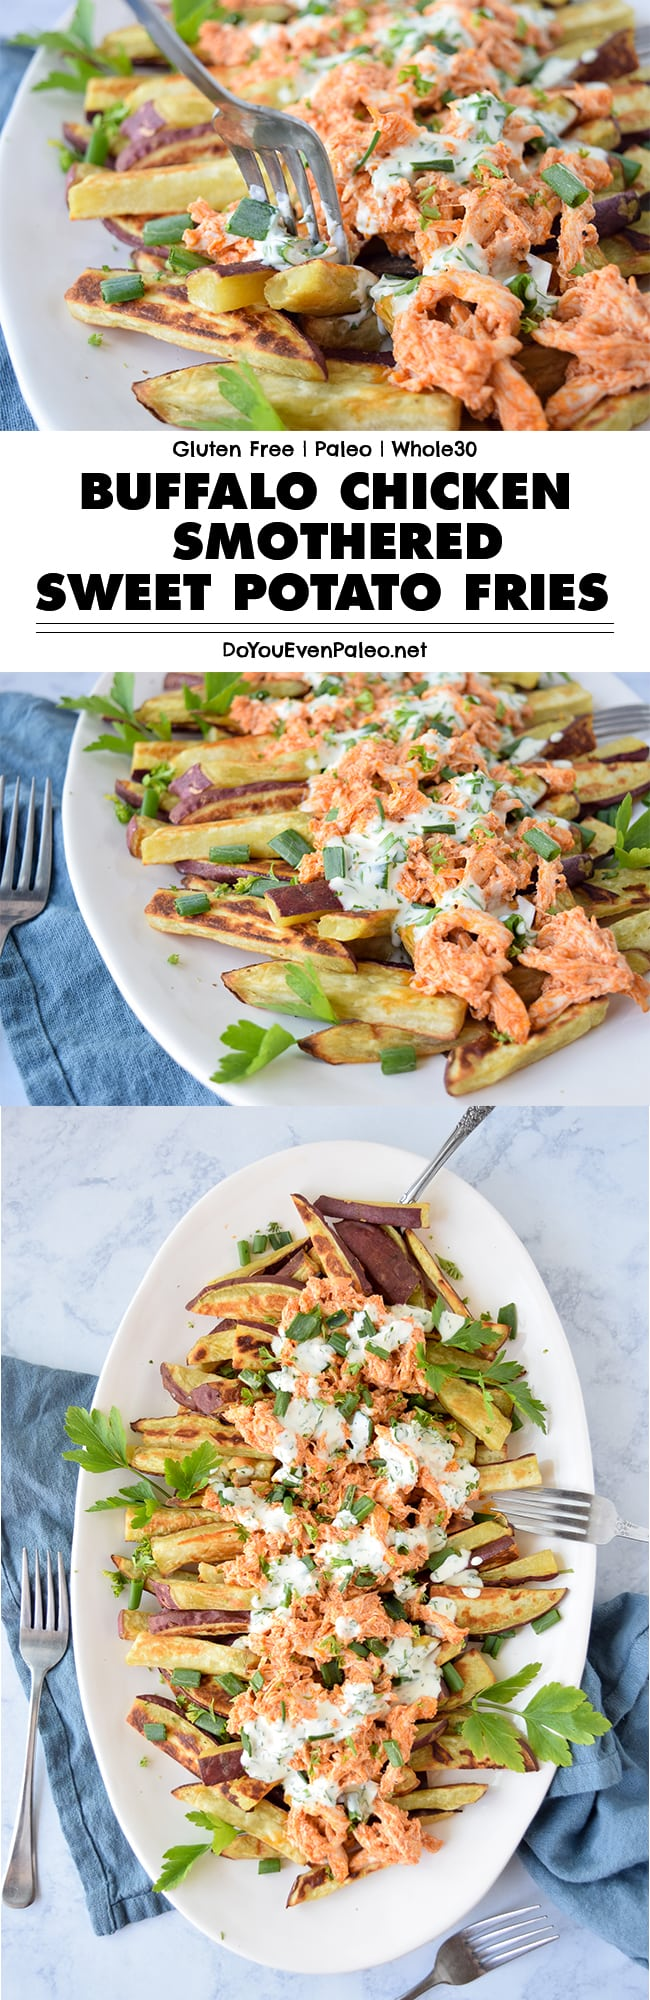 Buffalo Chicken Smothered Sweet Potato Fries - this healthy recipe uses just a handful of ingredients for a hearty, crowd-pleasing meal. Baked sweet potato fries topped with buffalo chicken and a simple mayo sauce. Plus, it's a gluten free, paleo, clean eating, and Whole30 recipe! | DoYouEvenPaleo.net #paleo #glutenfree #doyouevenpaleo #whole30